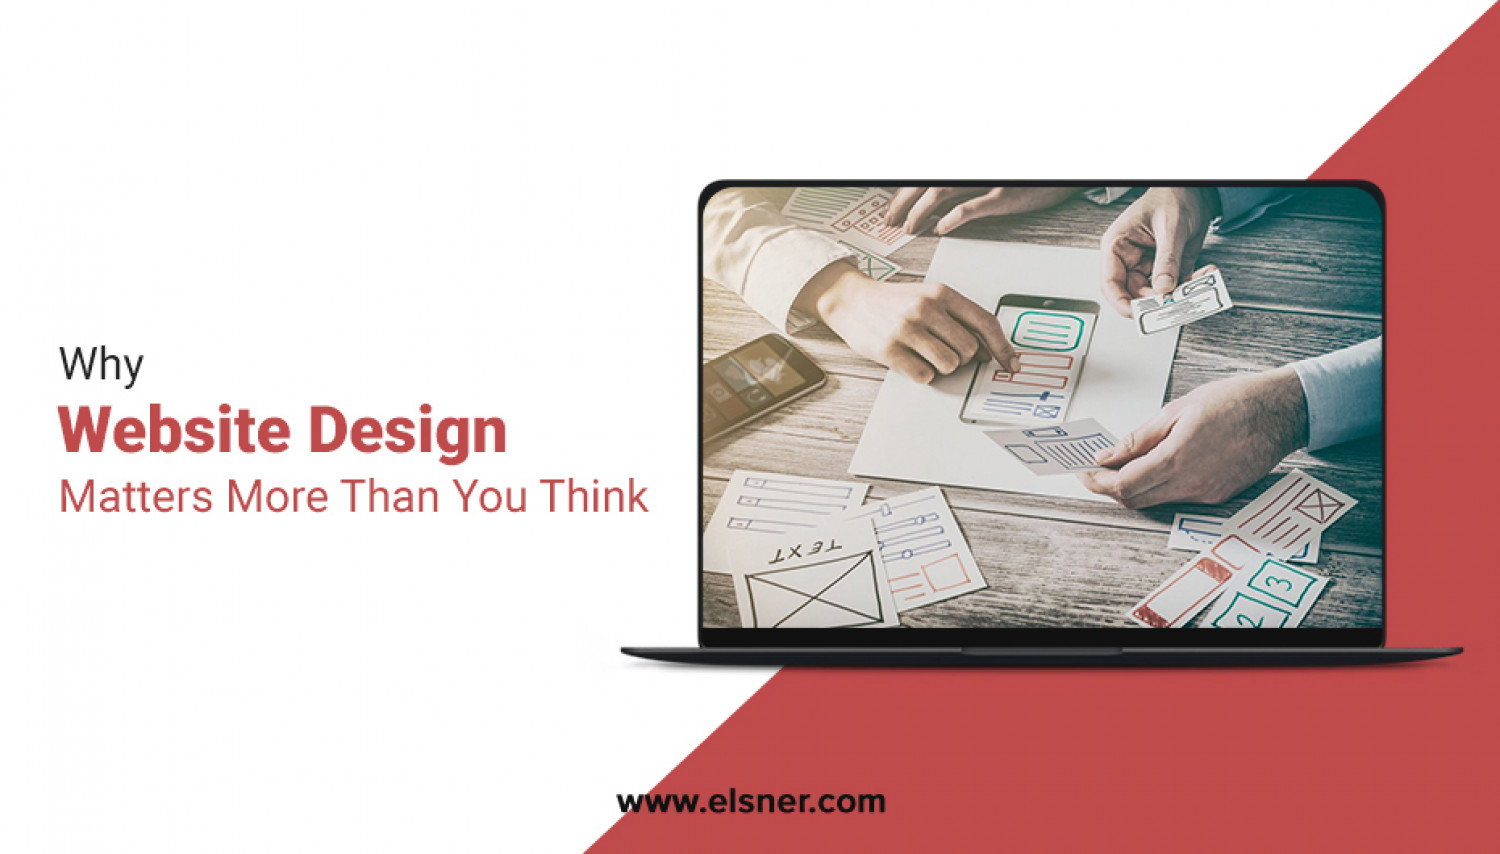 Why Website Design Matters? More Than You Think Infographic